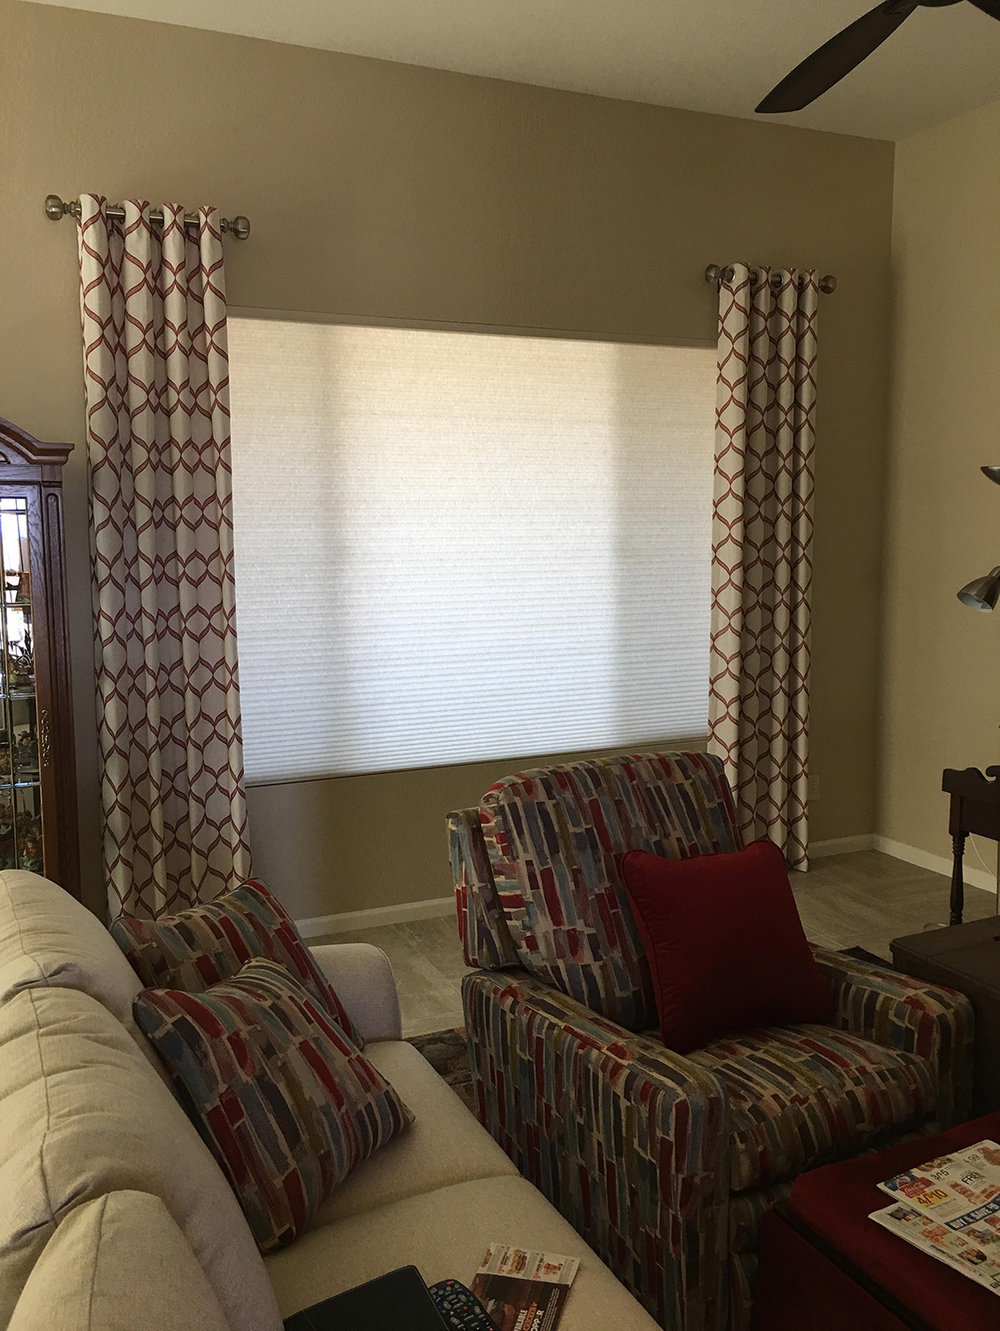 These patterned draperies enhance the look of the plain shades and add a little bit of style to the room.